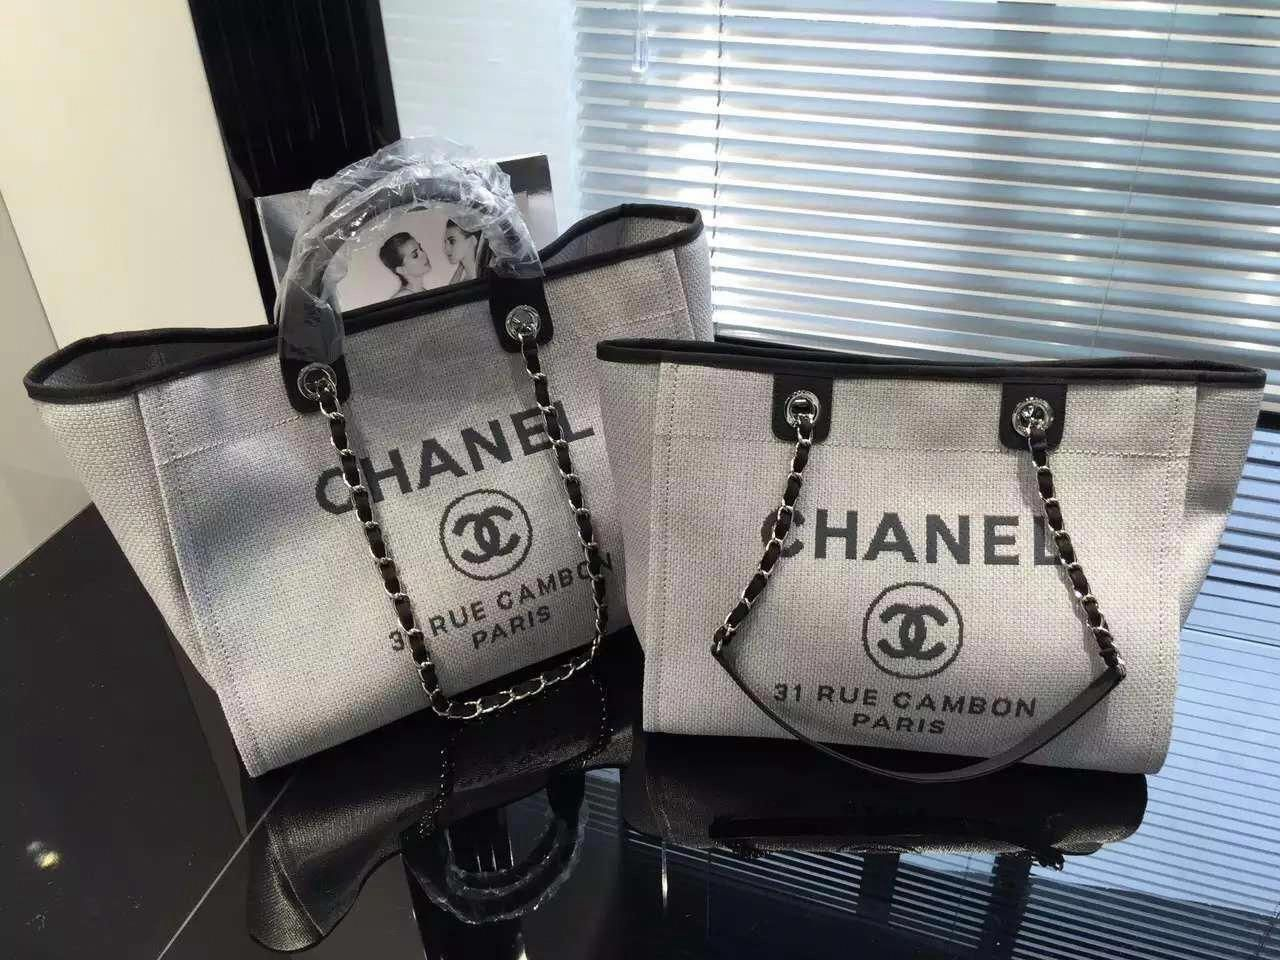 Chanel Toile Deauville Canvas Shopping Tote Bag 2015-2016 Collection ... 13d81f7902d63